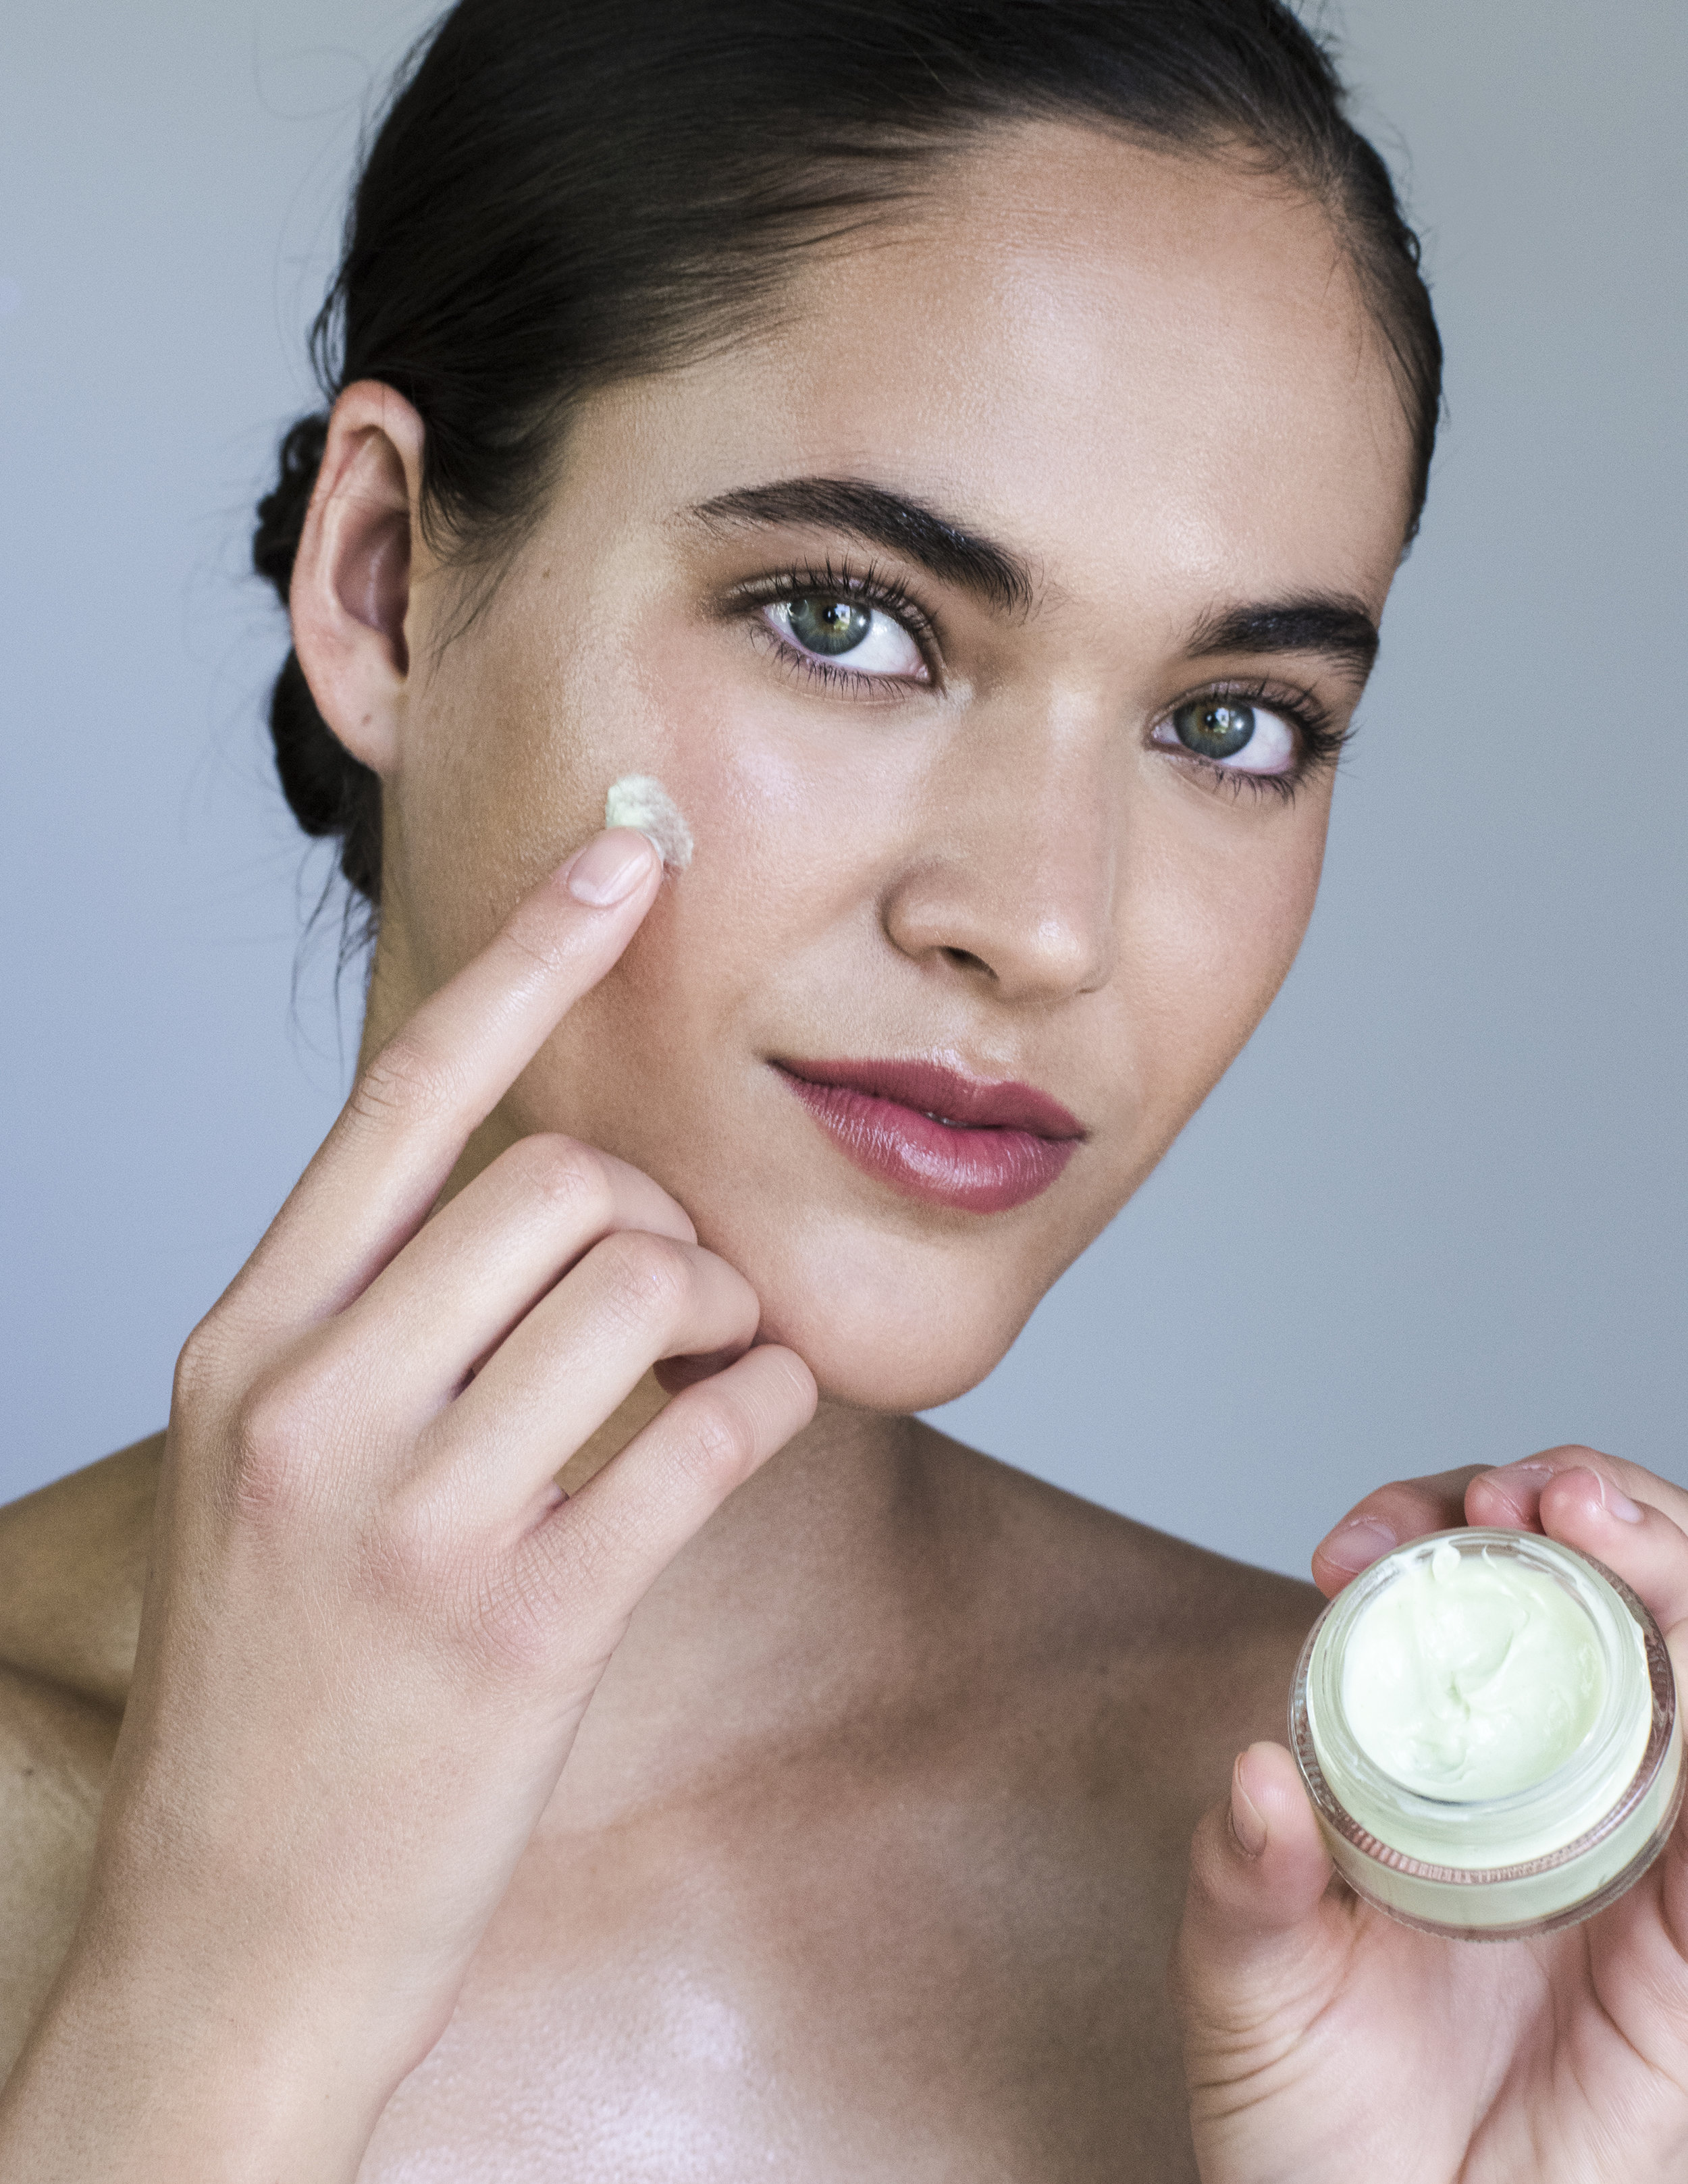 4. Spot Treat - Don't squeeze any pimples that come to play, zap them with a dab of spot treatment instead. Banish: Breakouts and Blemishes makes them all but disappear in front of your eyes!